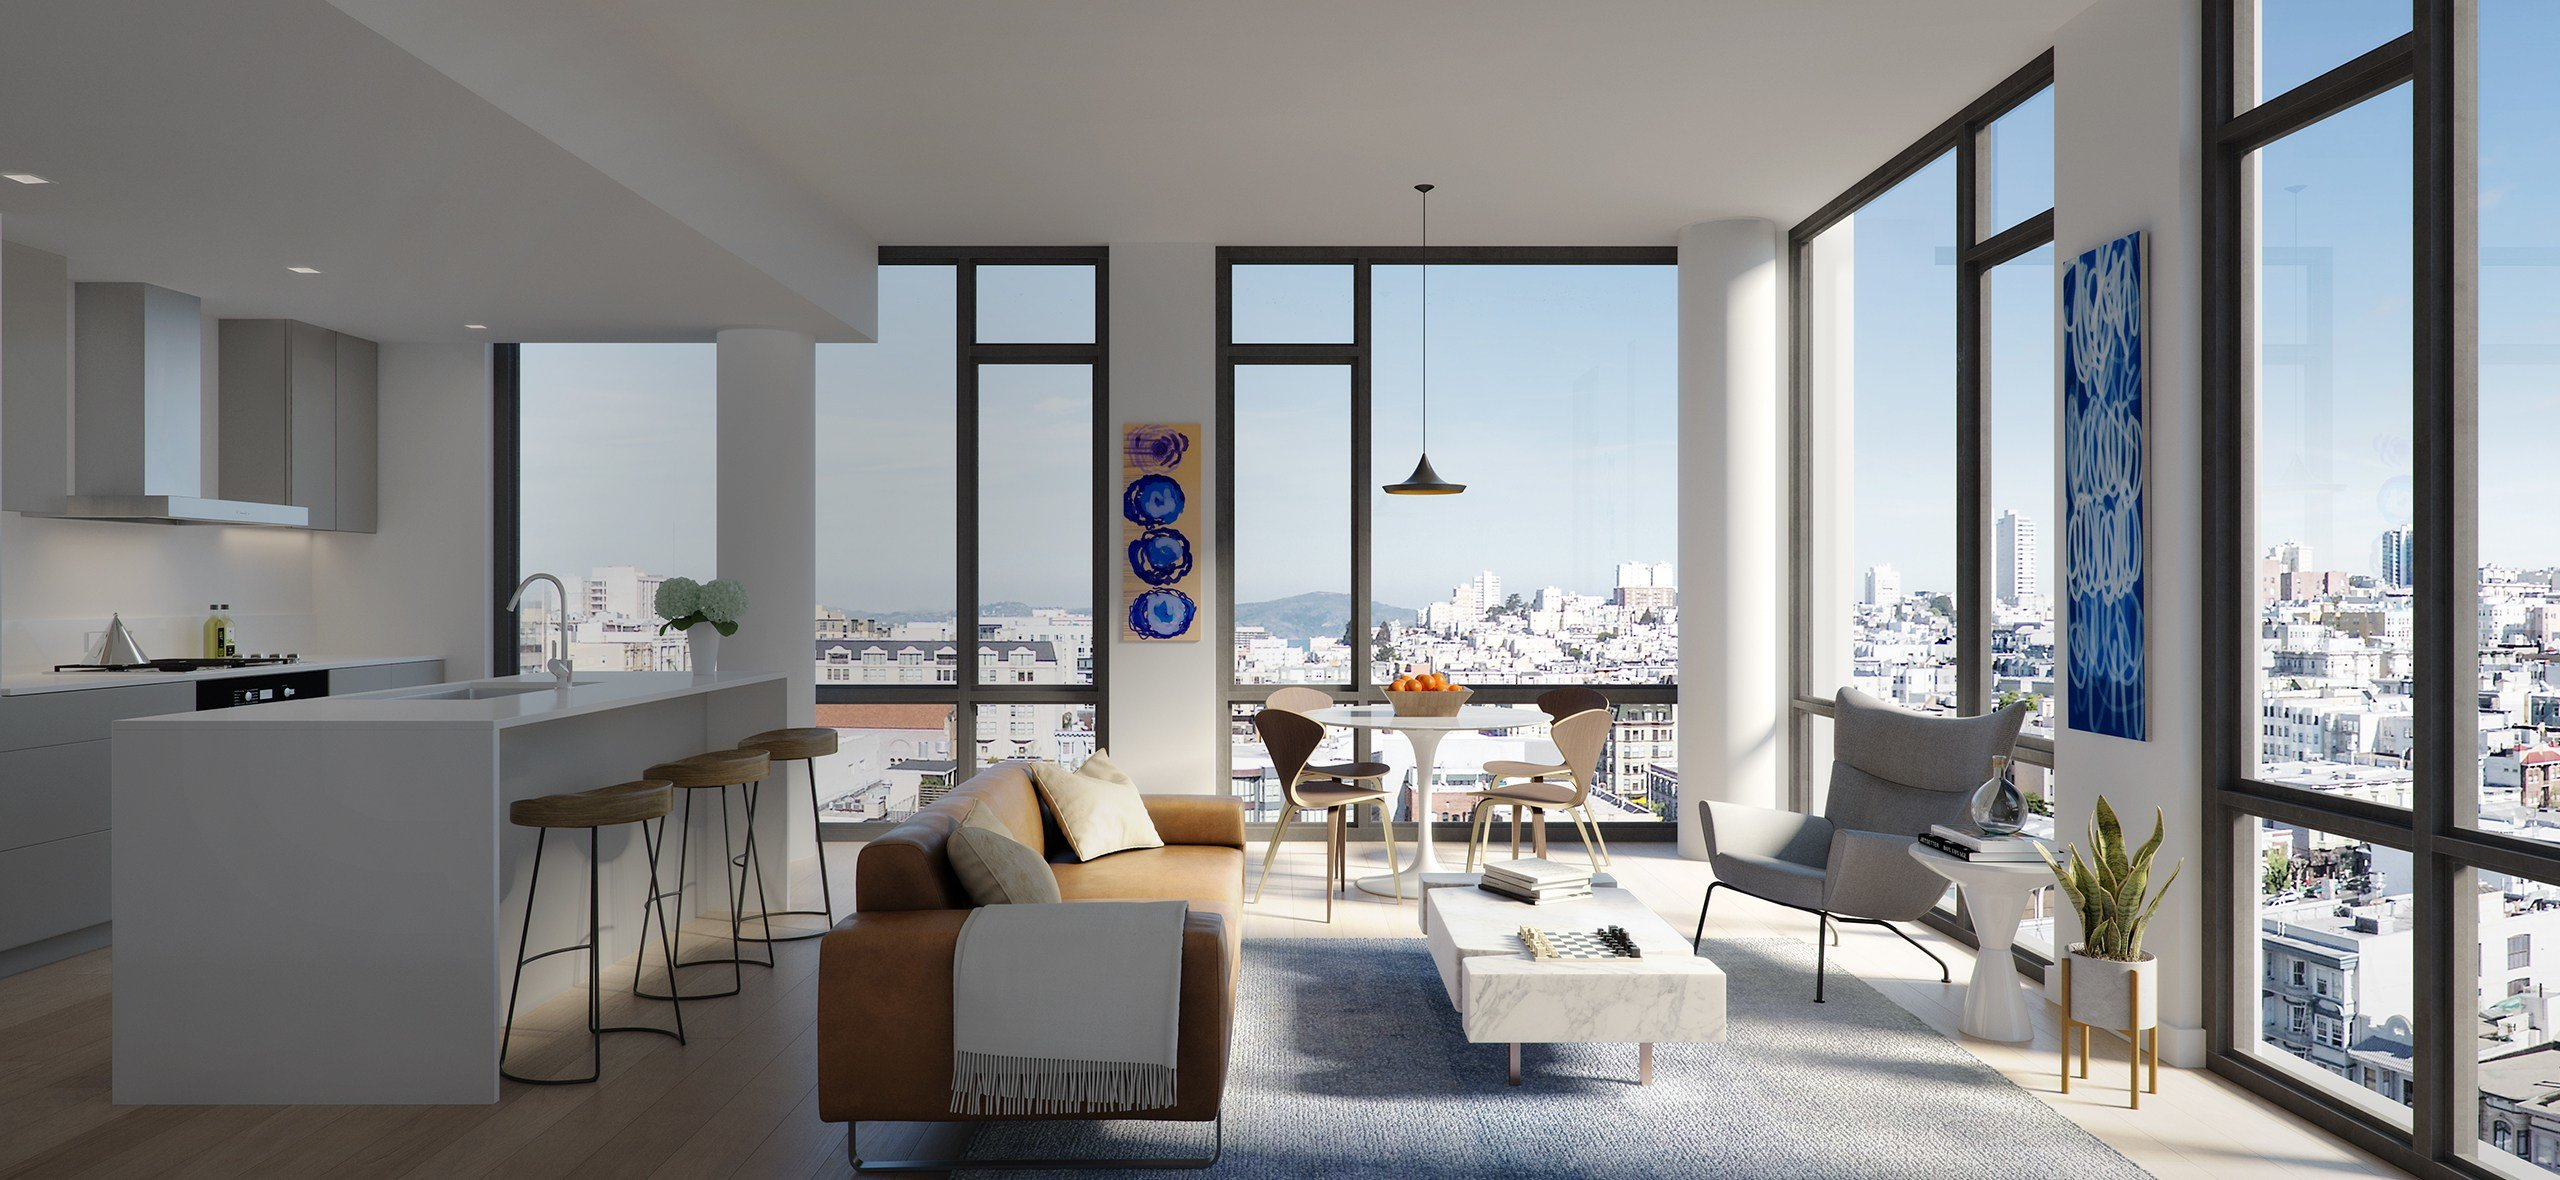 Best One Two Bedroom Luxury Condos For Sale San Francisco With Pictures